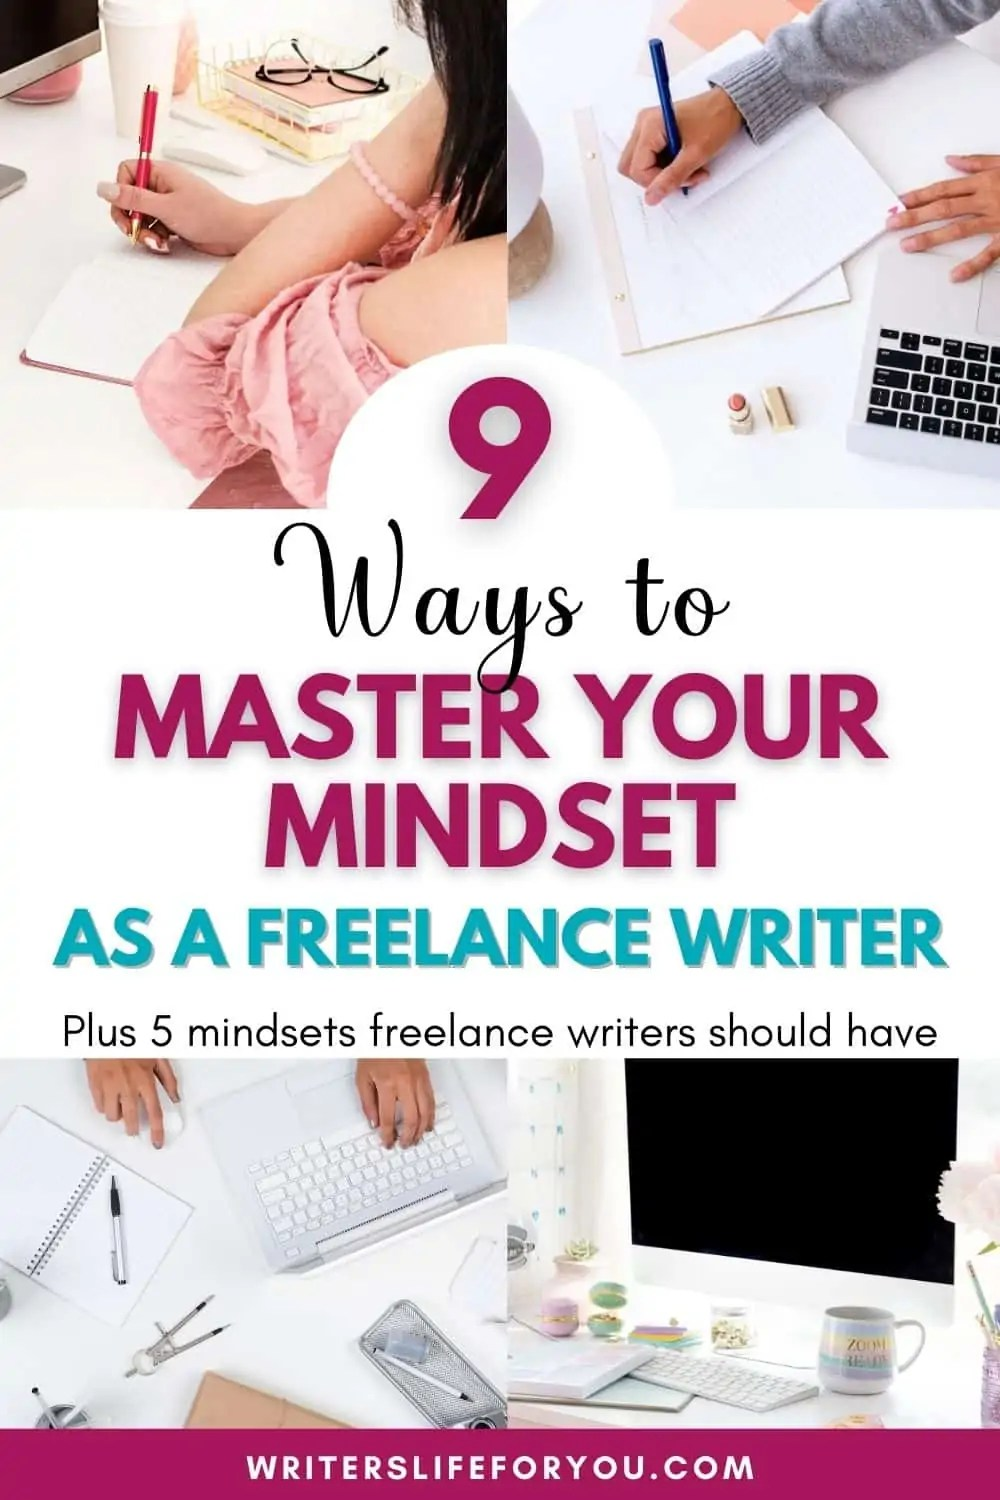 Mastering Your Mindset: 9 Effective Ways to Master Your Mindset as a Freelance Writer